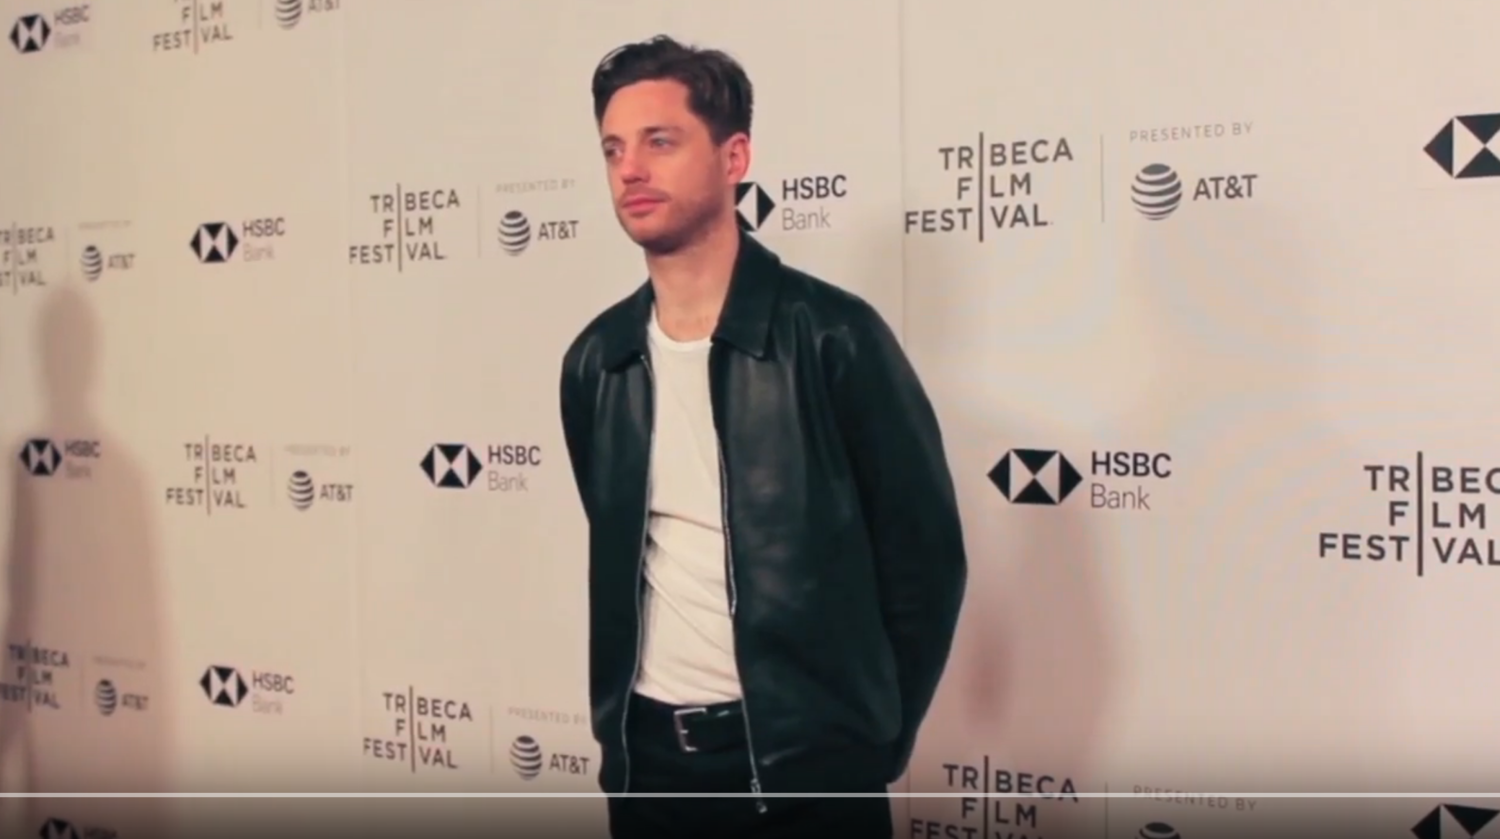 Video) James talks Jellyfish on Tribeca red carpet — JELLYFISH